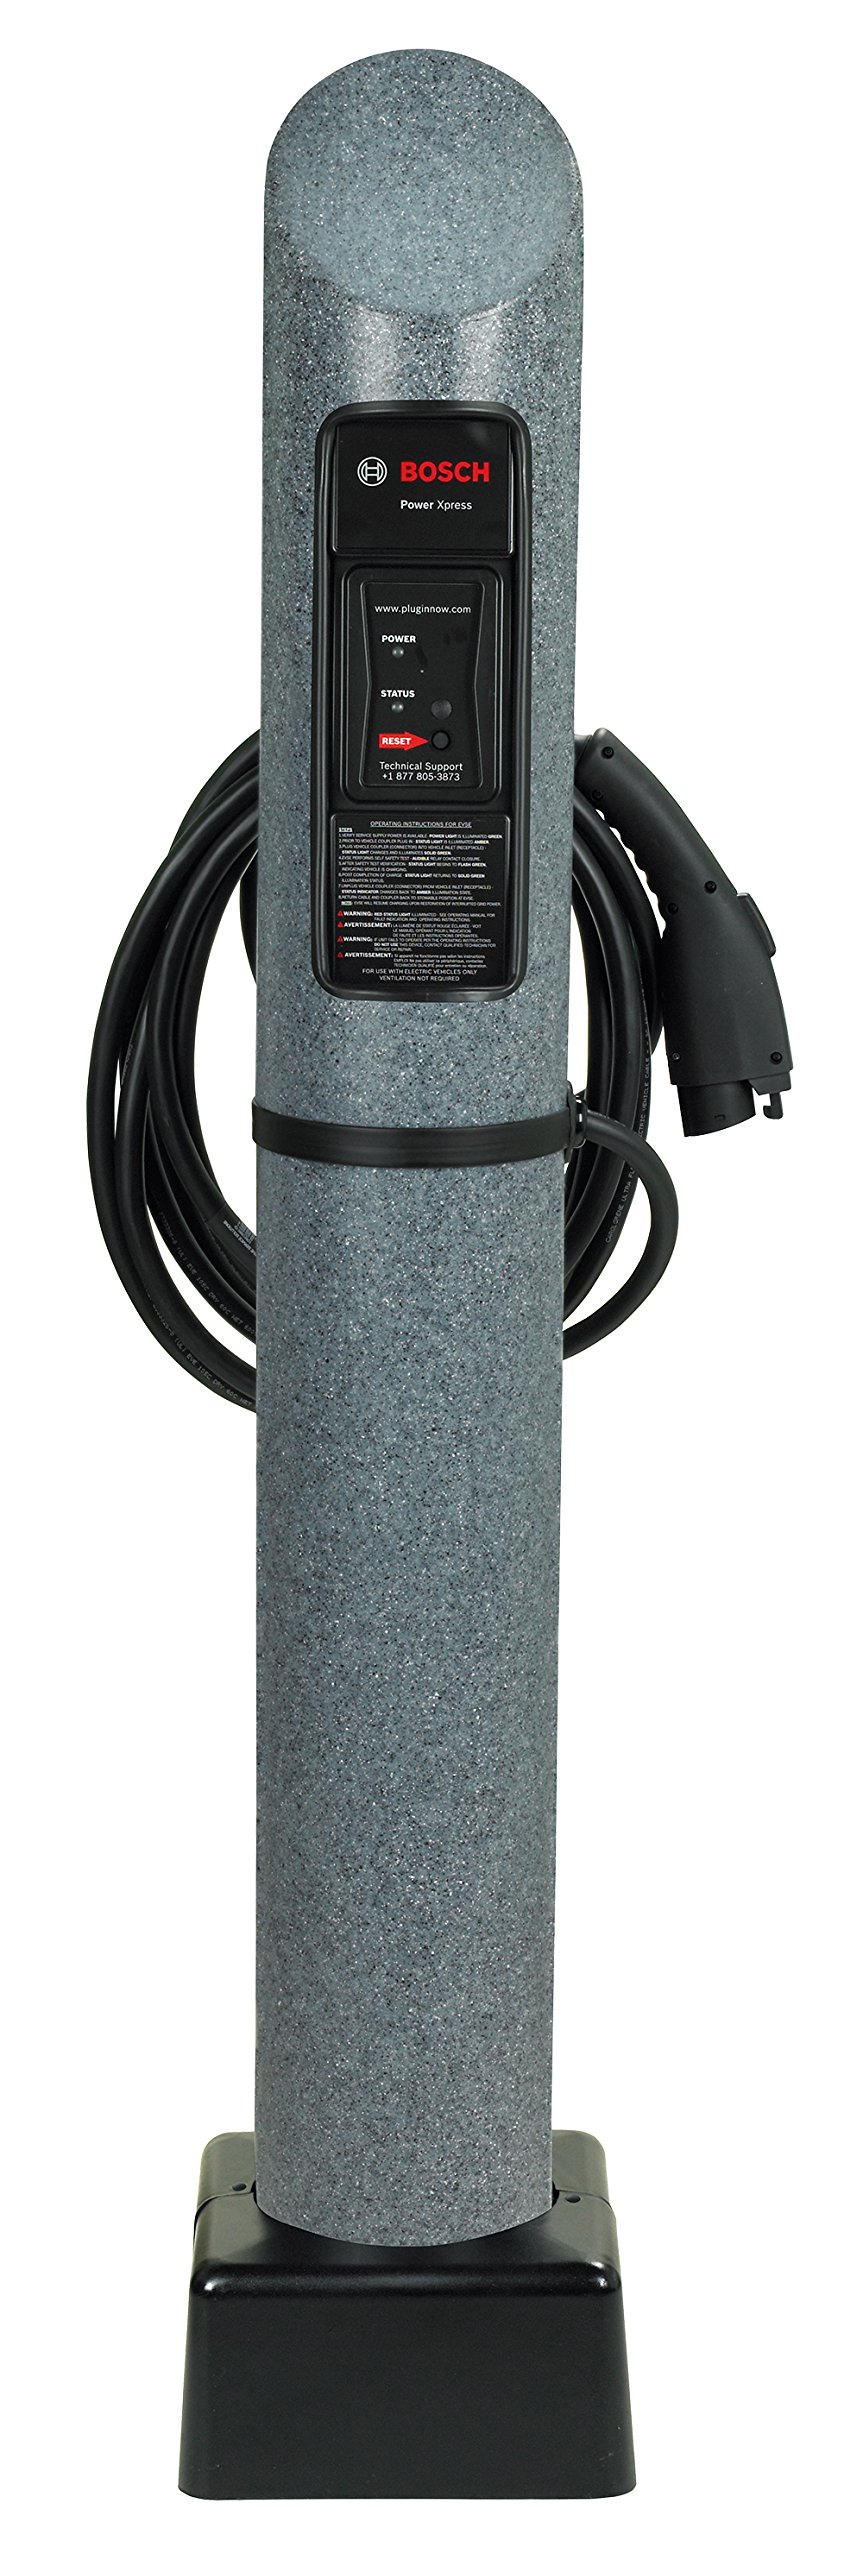 Bosch Power Xpress Single Bollard 32 Amp with 25´ Cord by Bosch (Image #1)